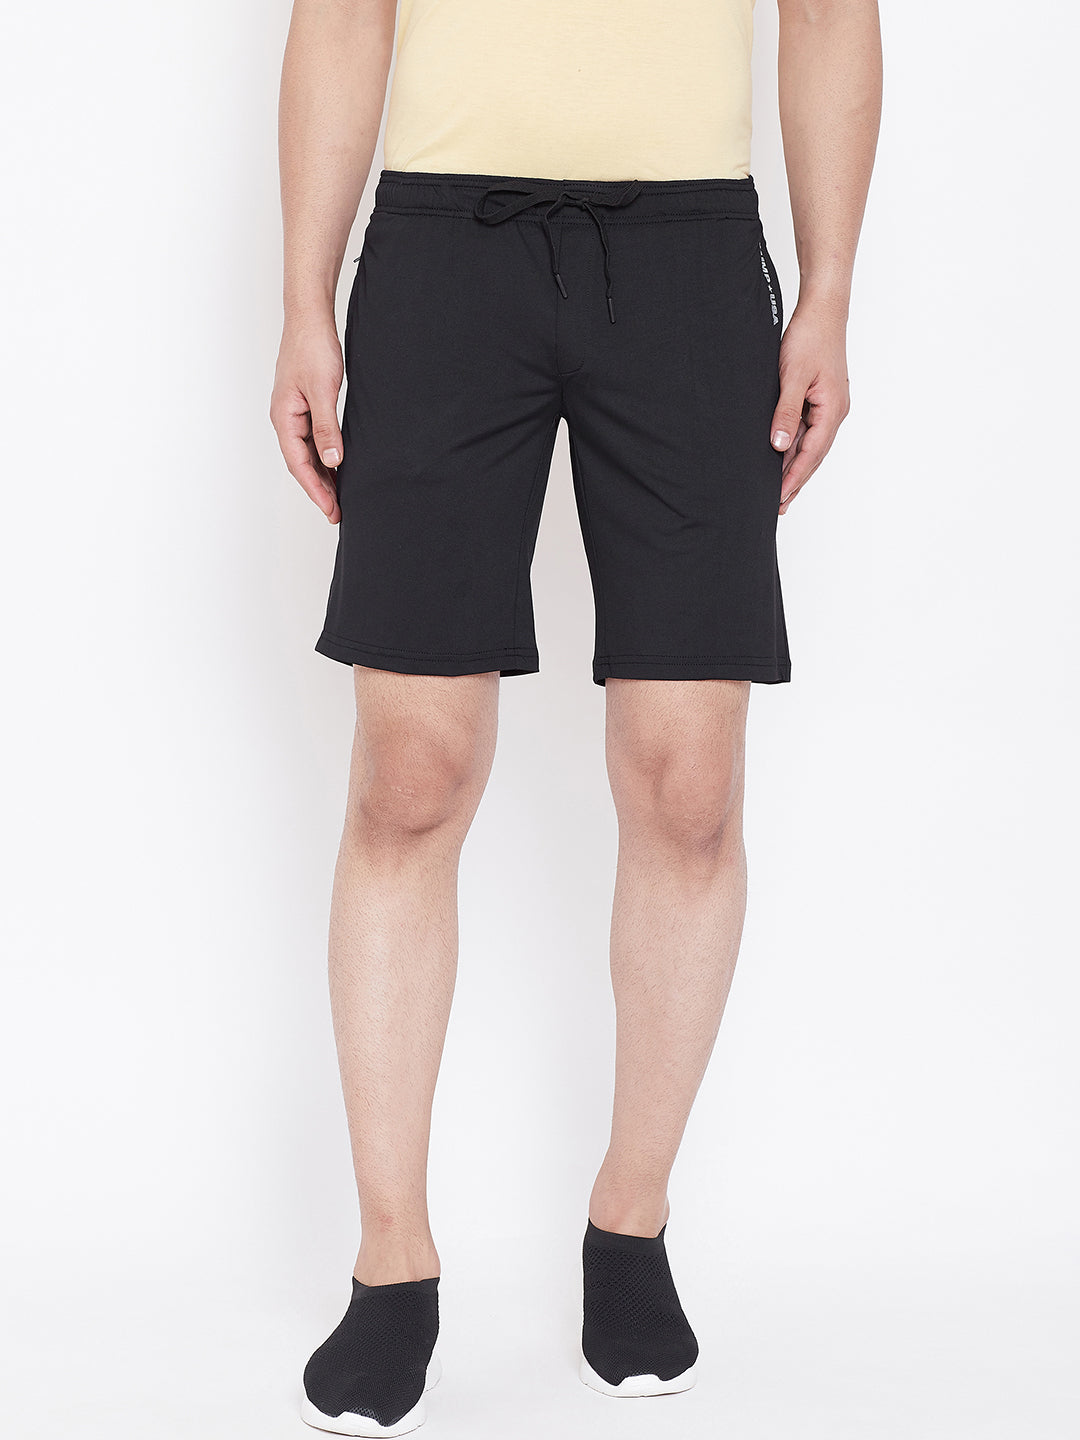 JUMP USA Men Black Solid Active Wear Shorts